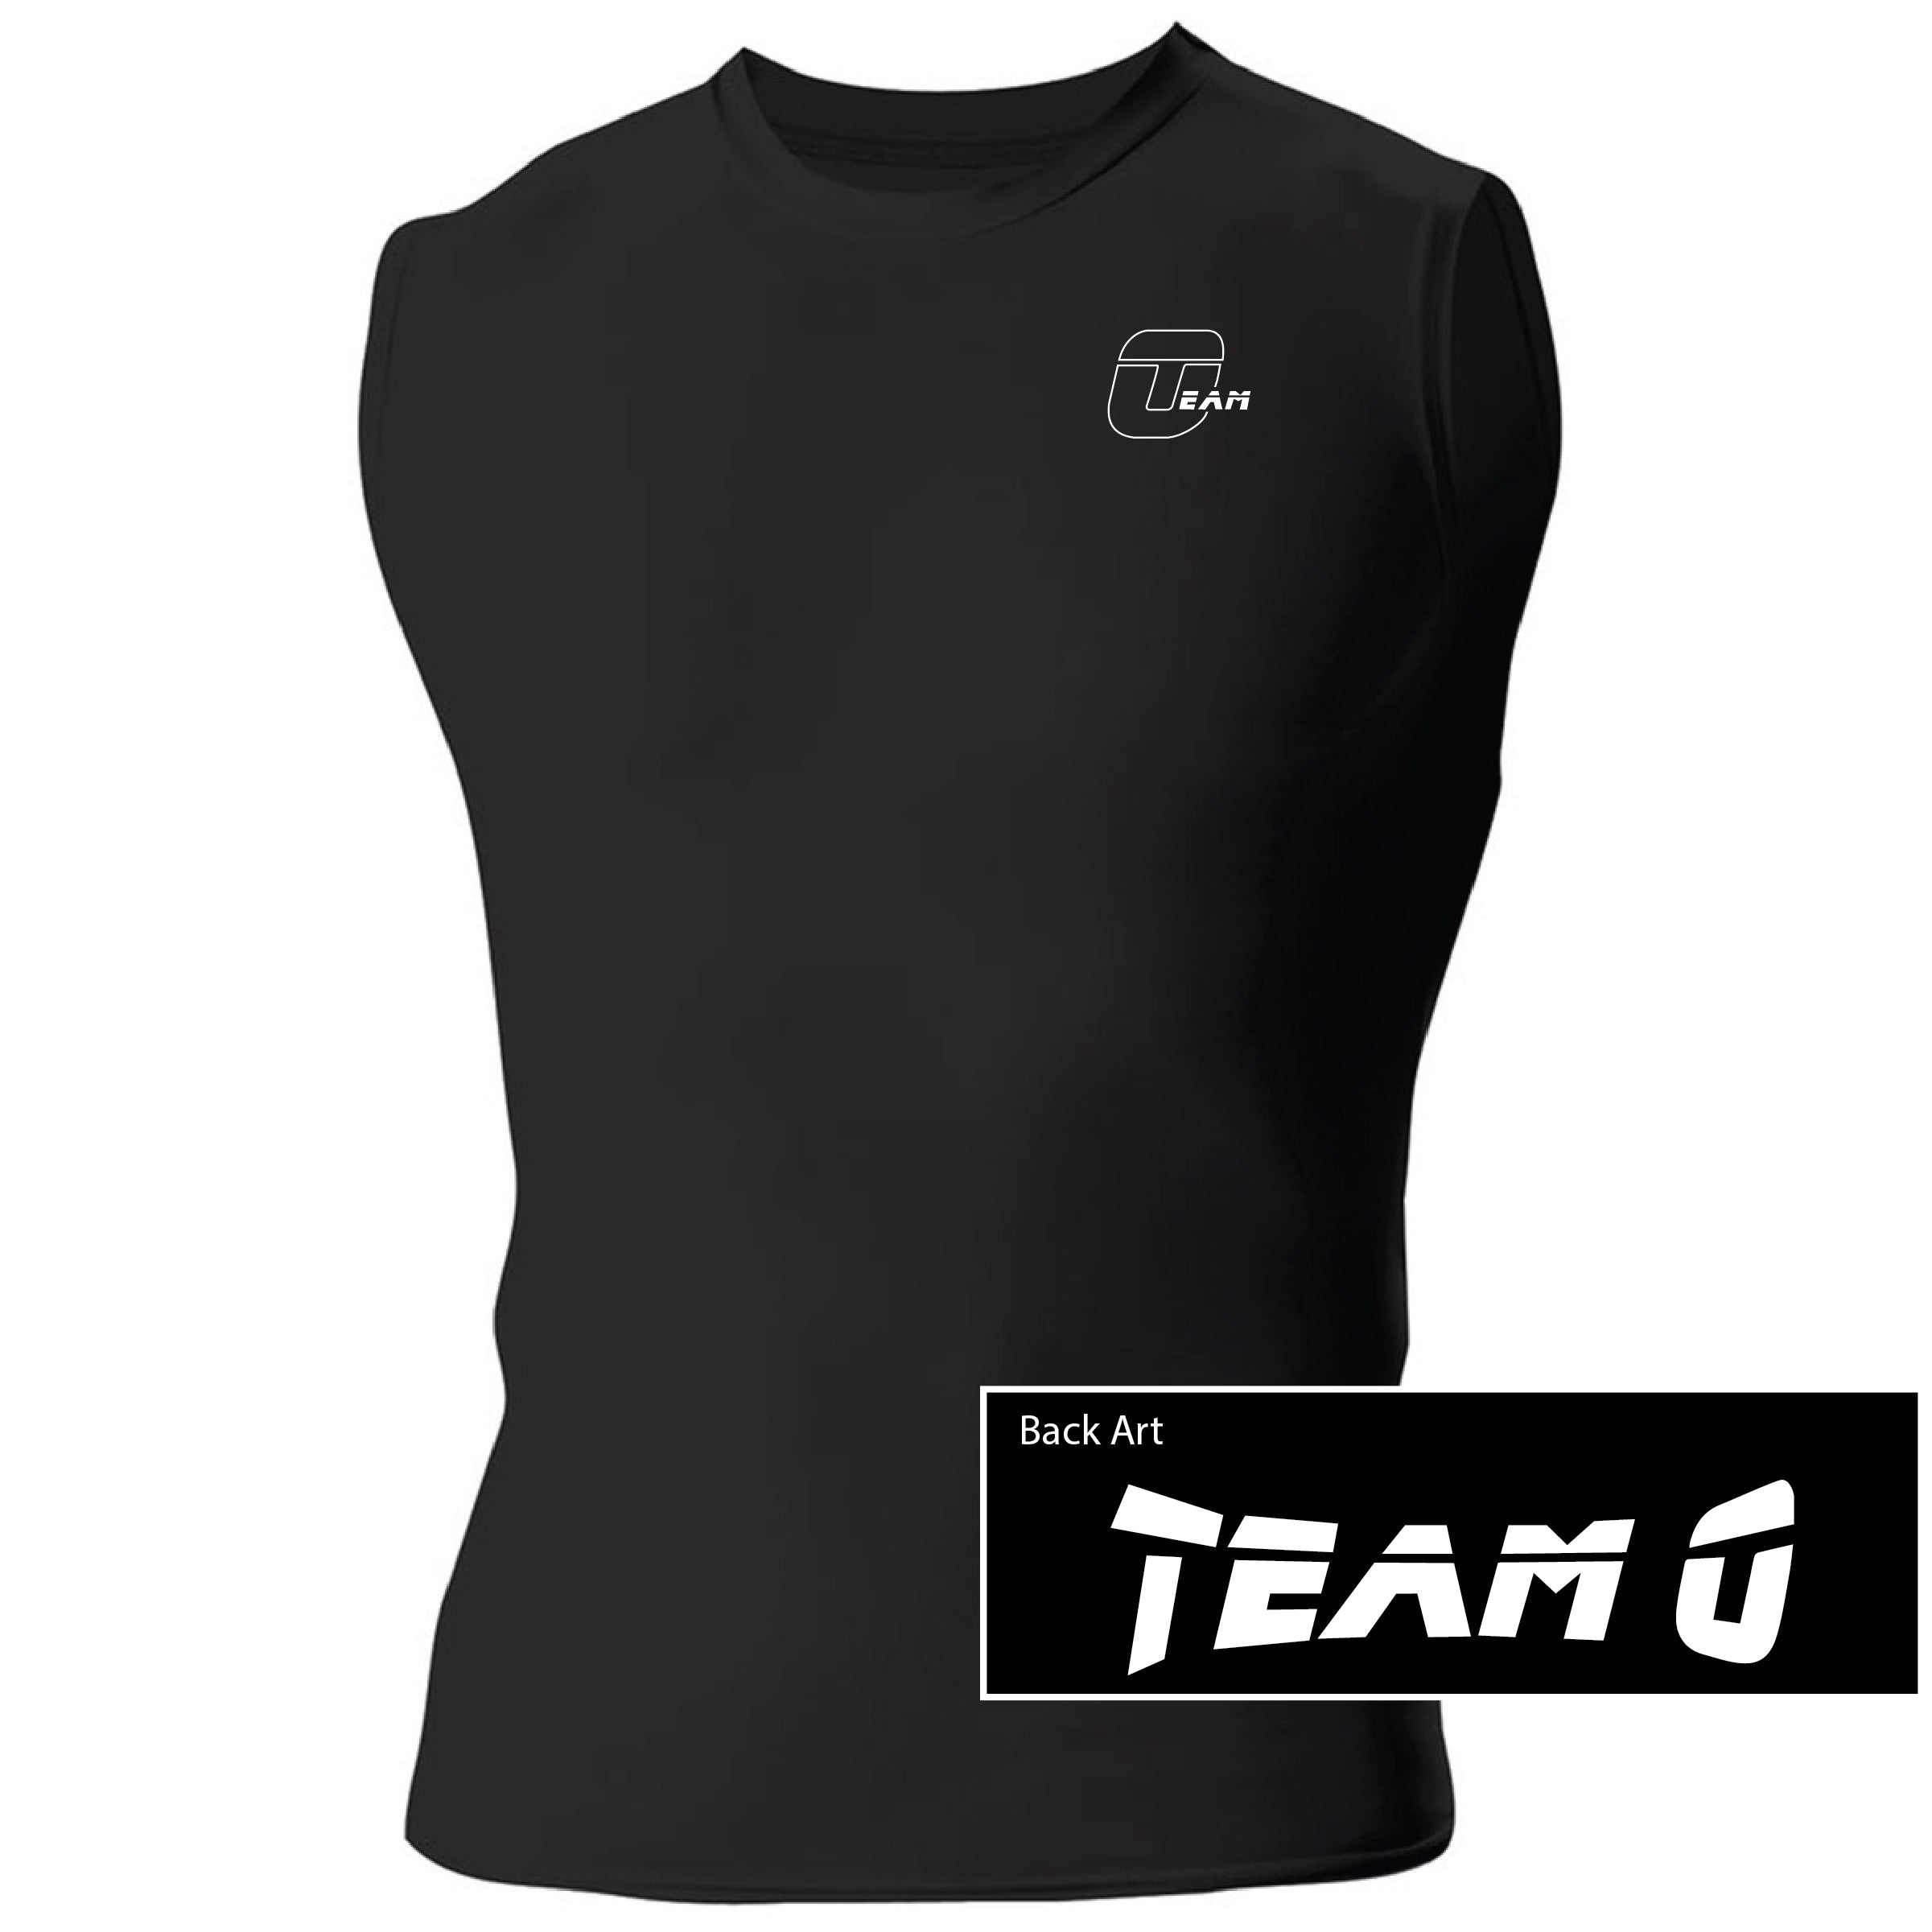 Team O A4 Men's Compression Muscle Shirt